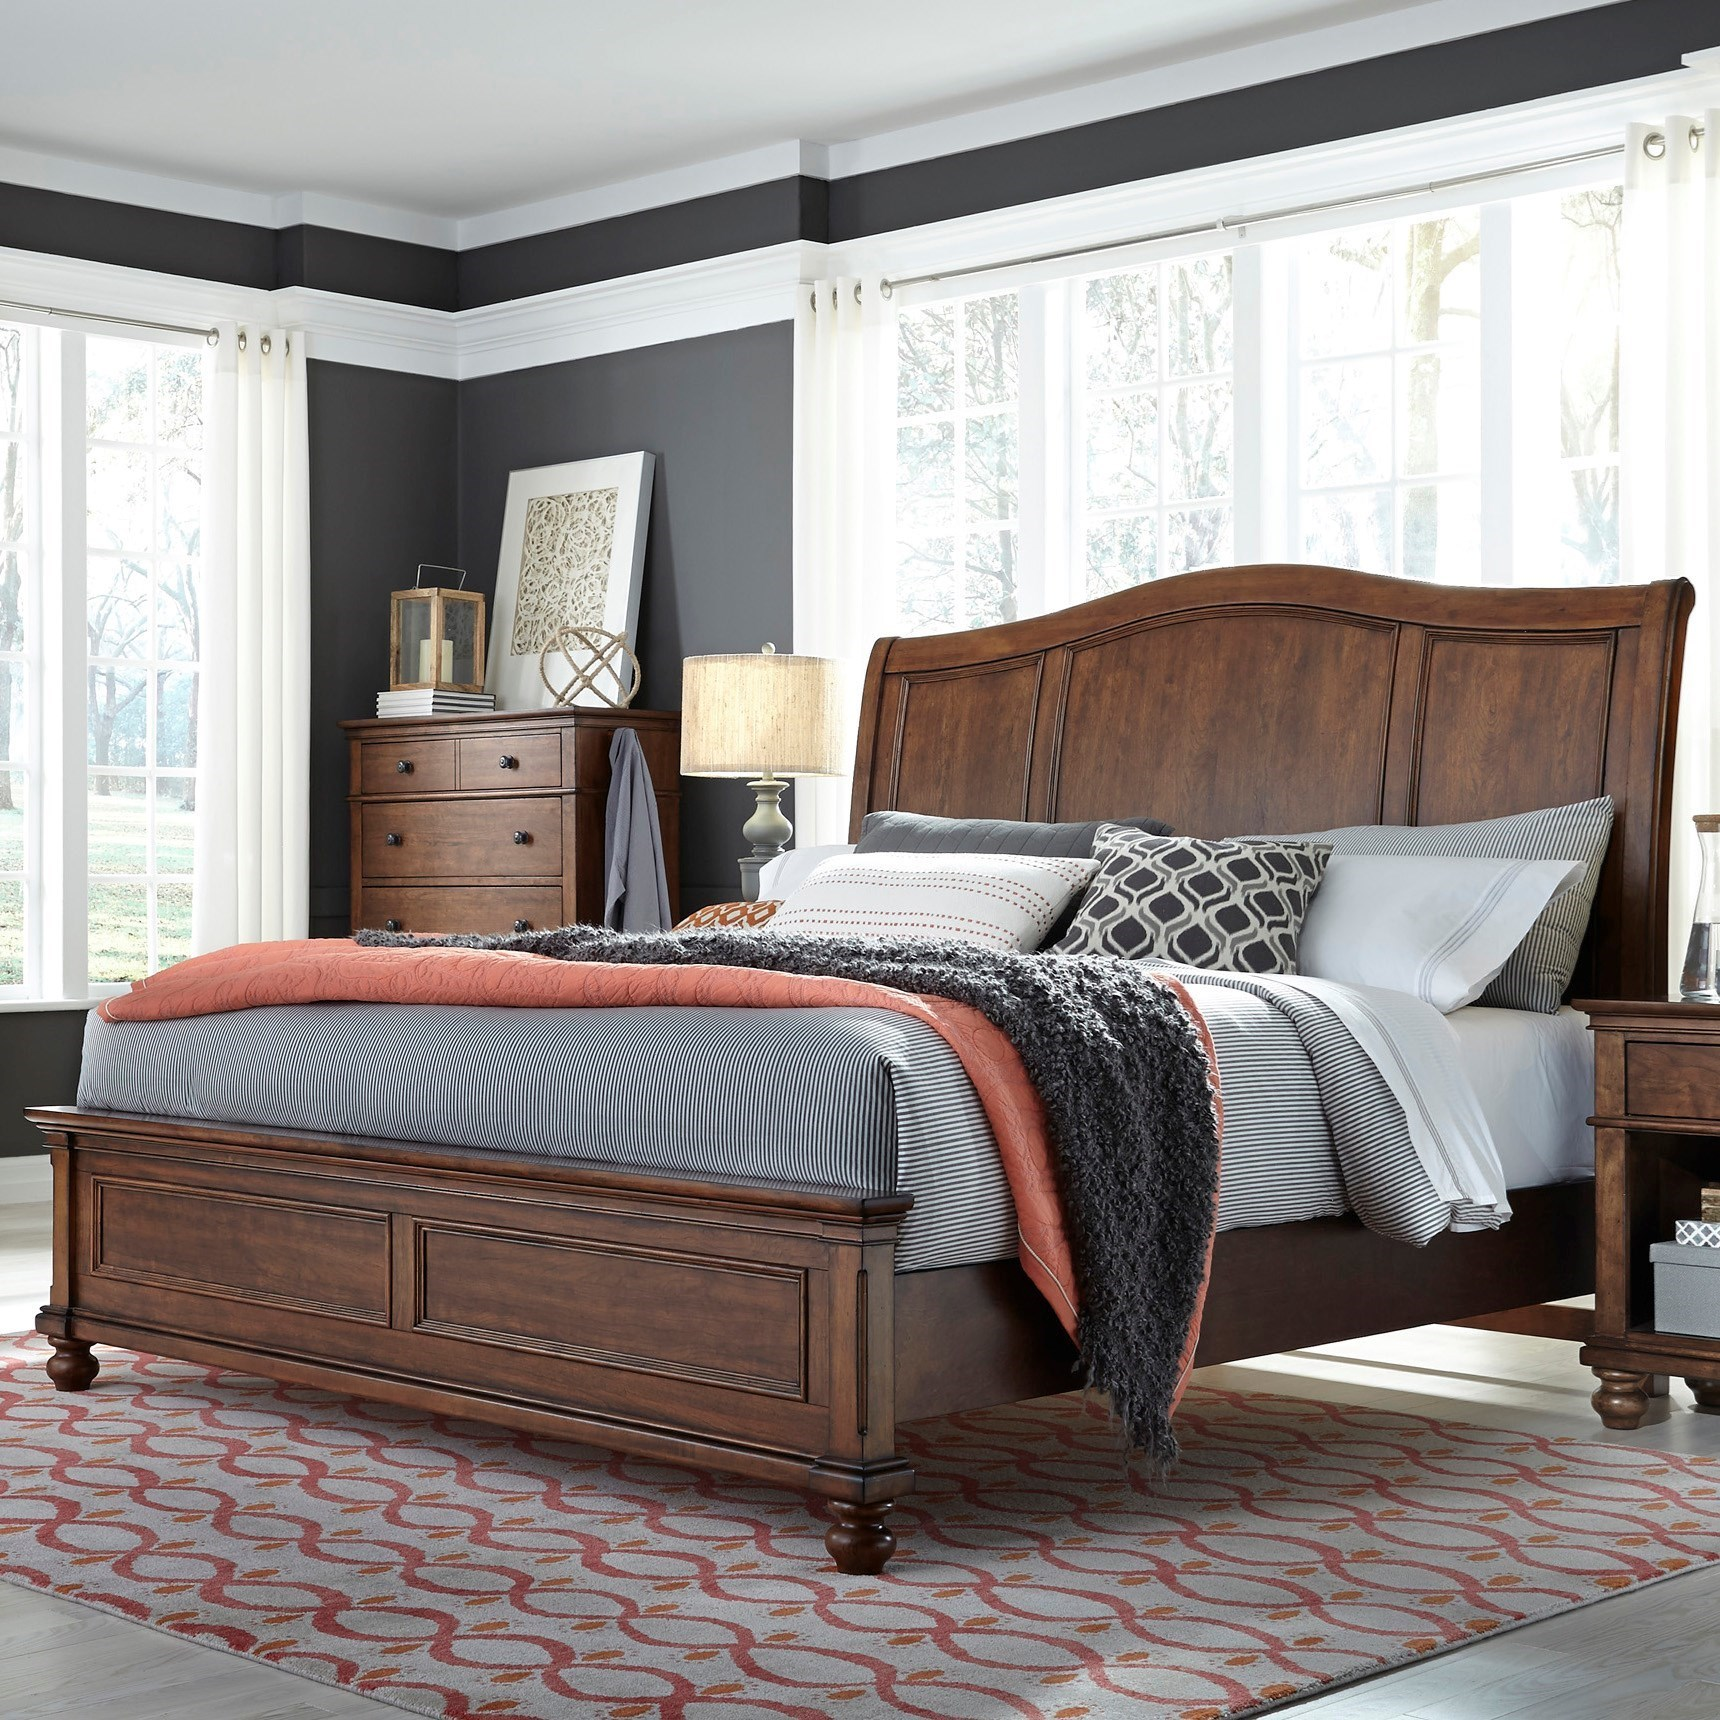 Aspenhome Oxford King Bed - Item Number: I07-404+407+406-WBR